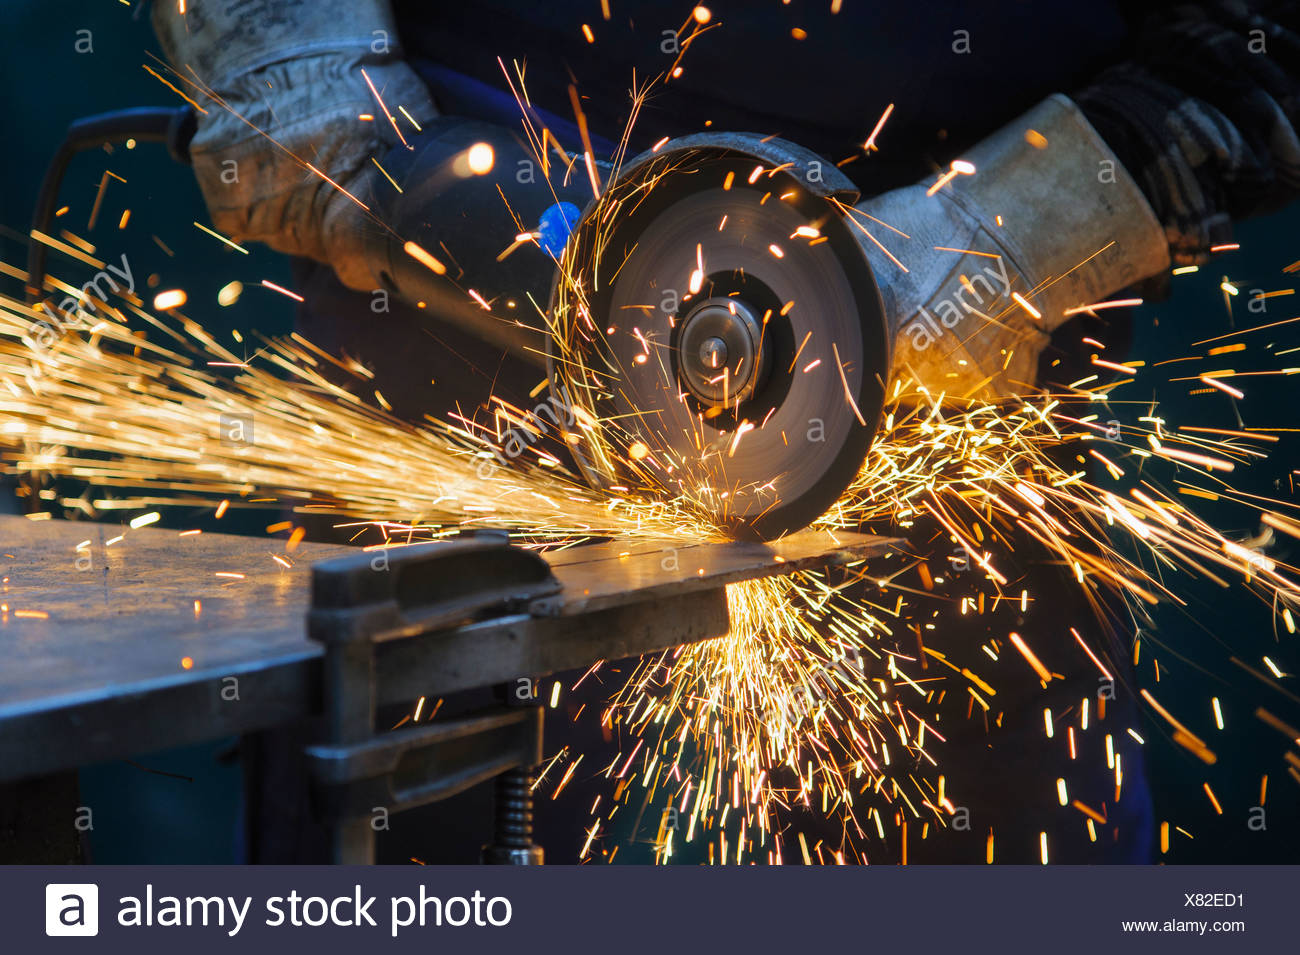 Cutting a steel plate with an angle grinder - Stock Image